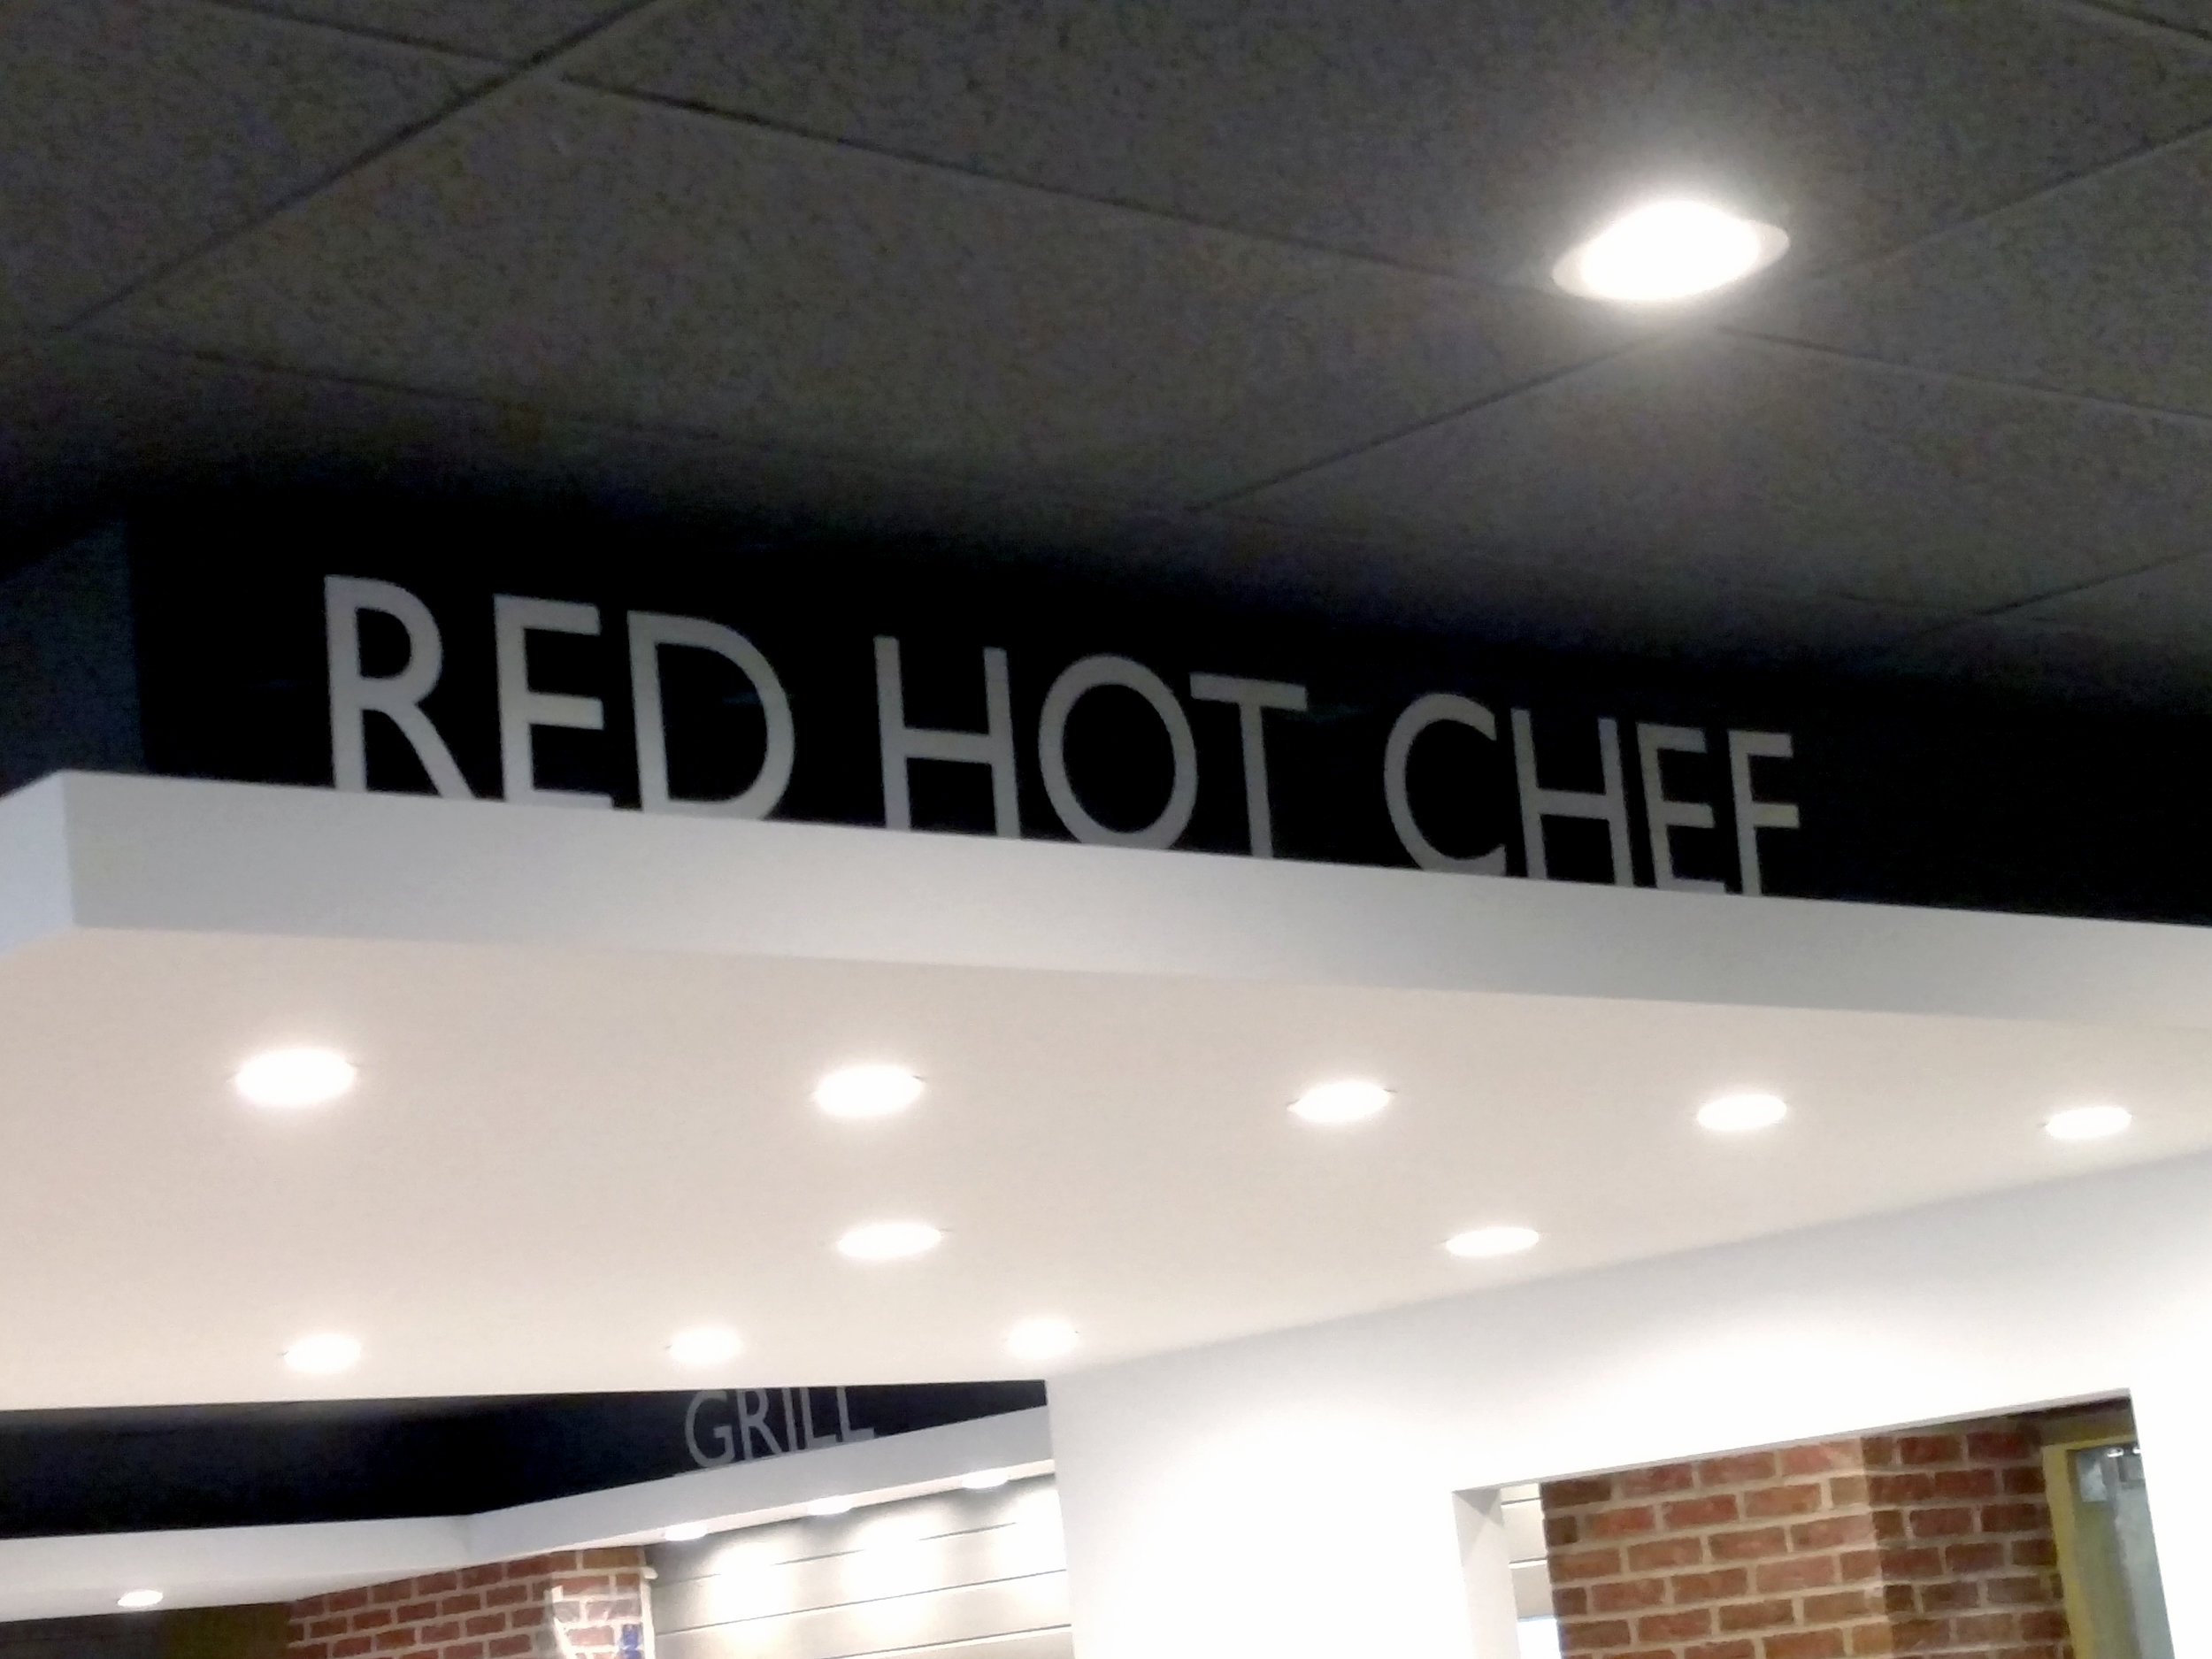 Red Hot Chef Signage.jpg